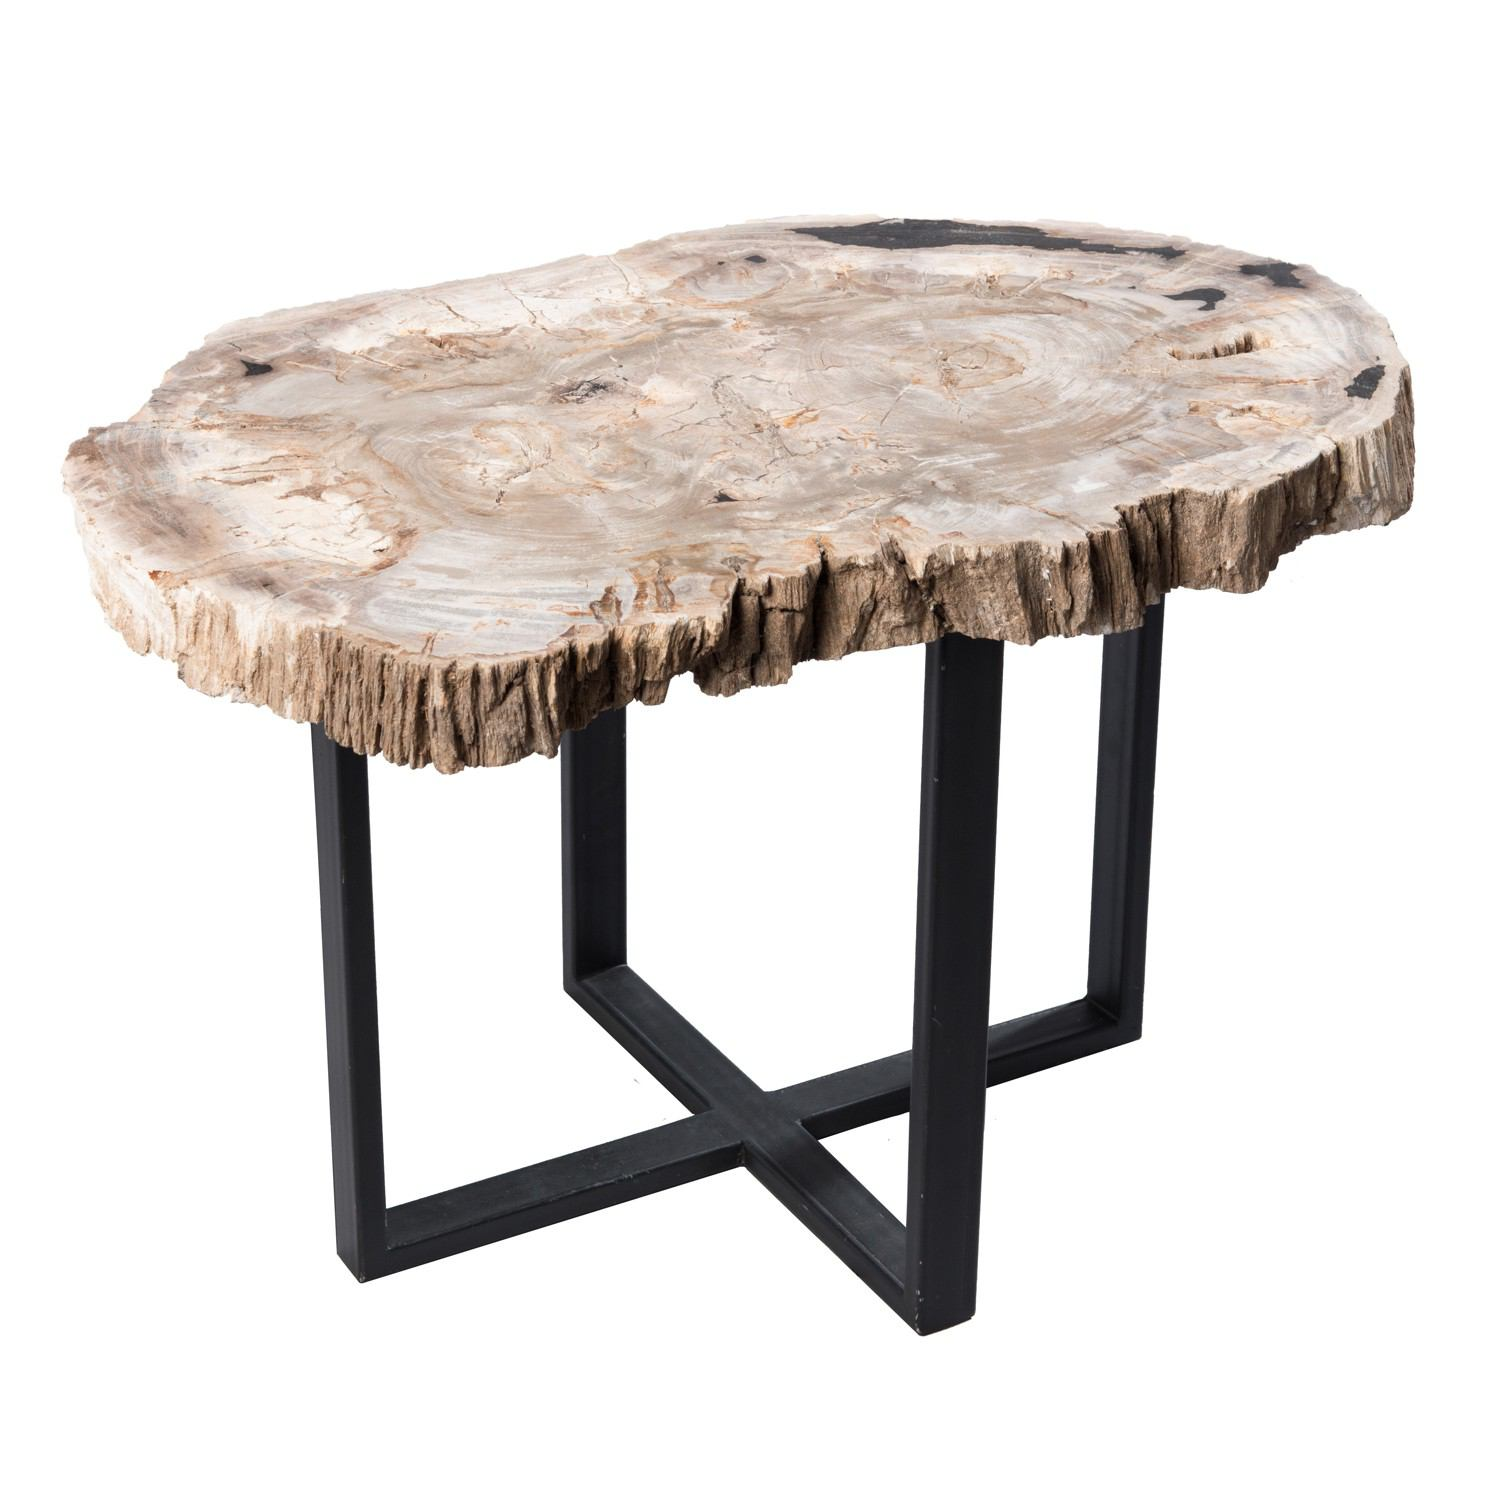 Petrified Wood Upper East Side Table PF-1050 by AIRE Furniture